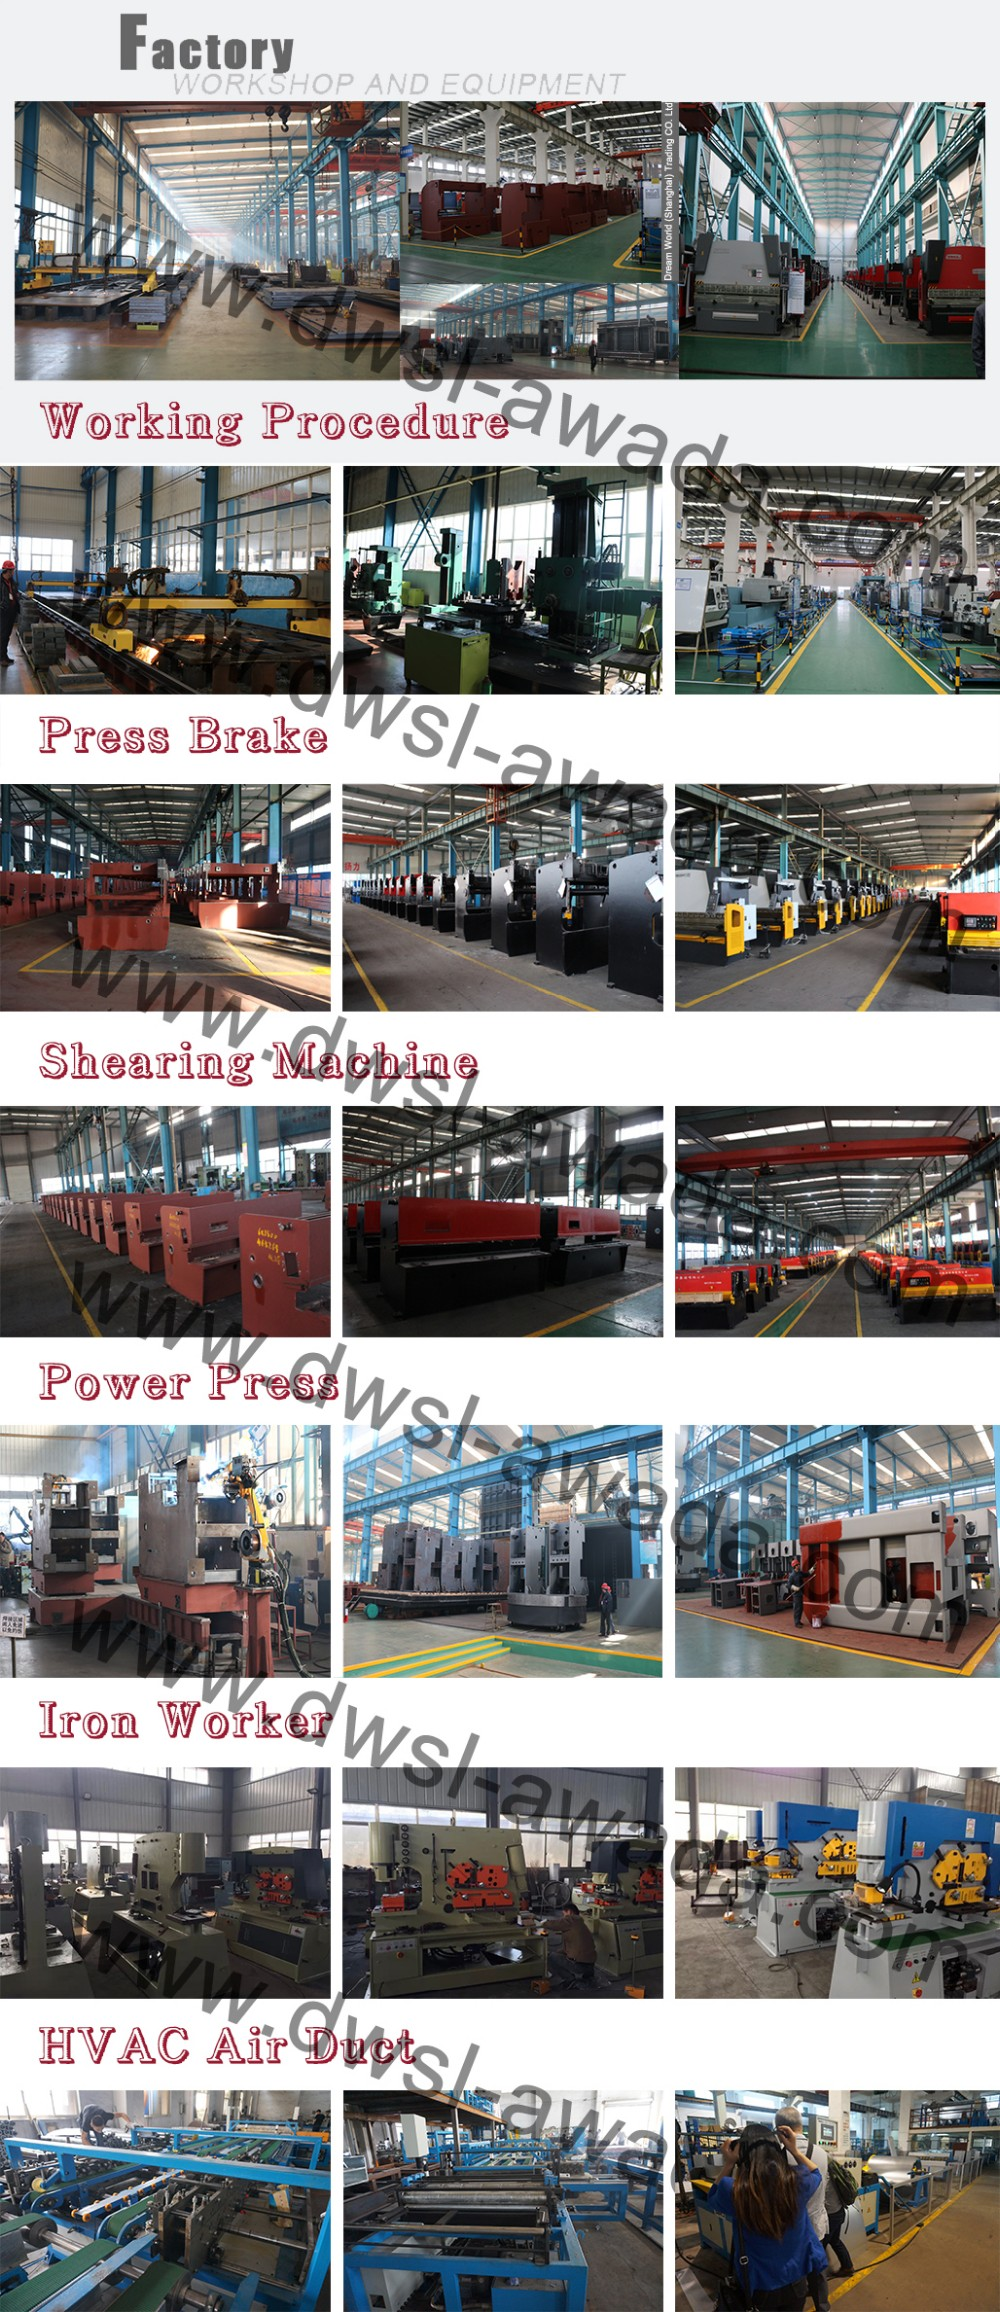 nc hydraulic press brakes 160 tons with 3.2 meters worktable in Panama